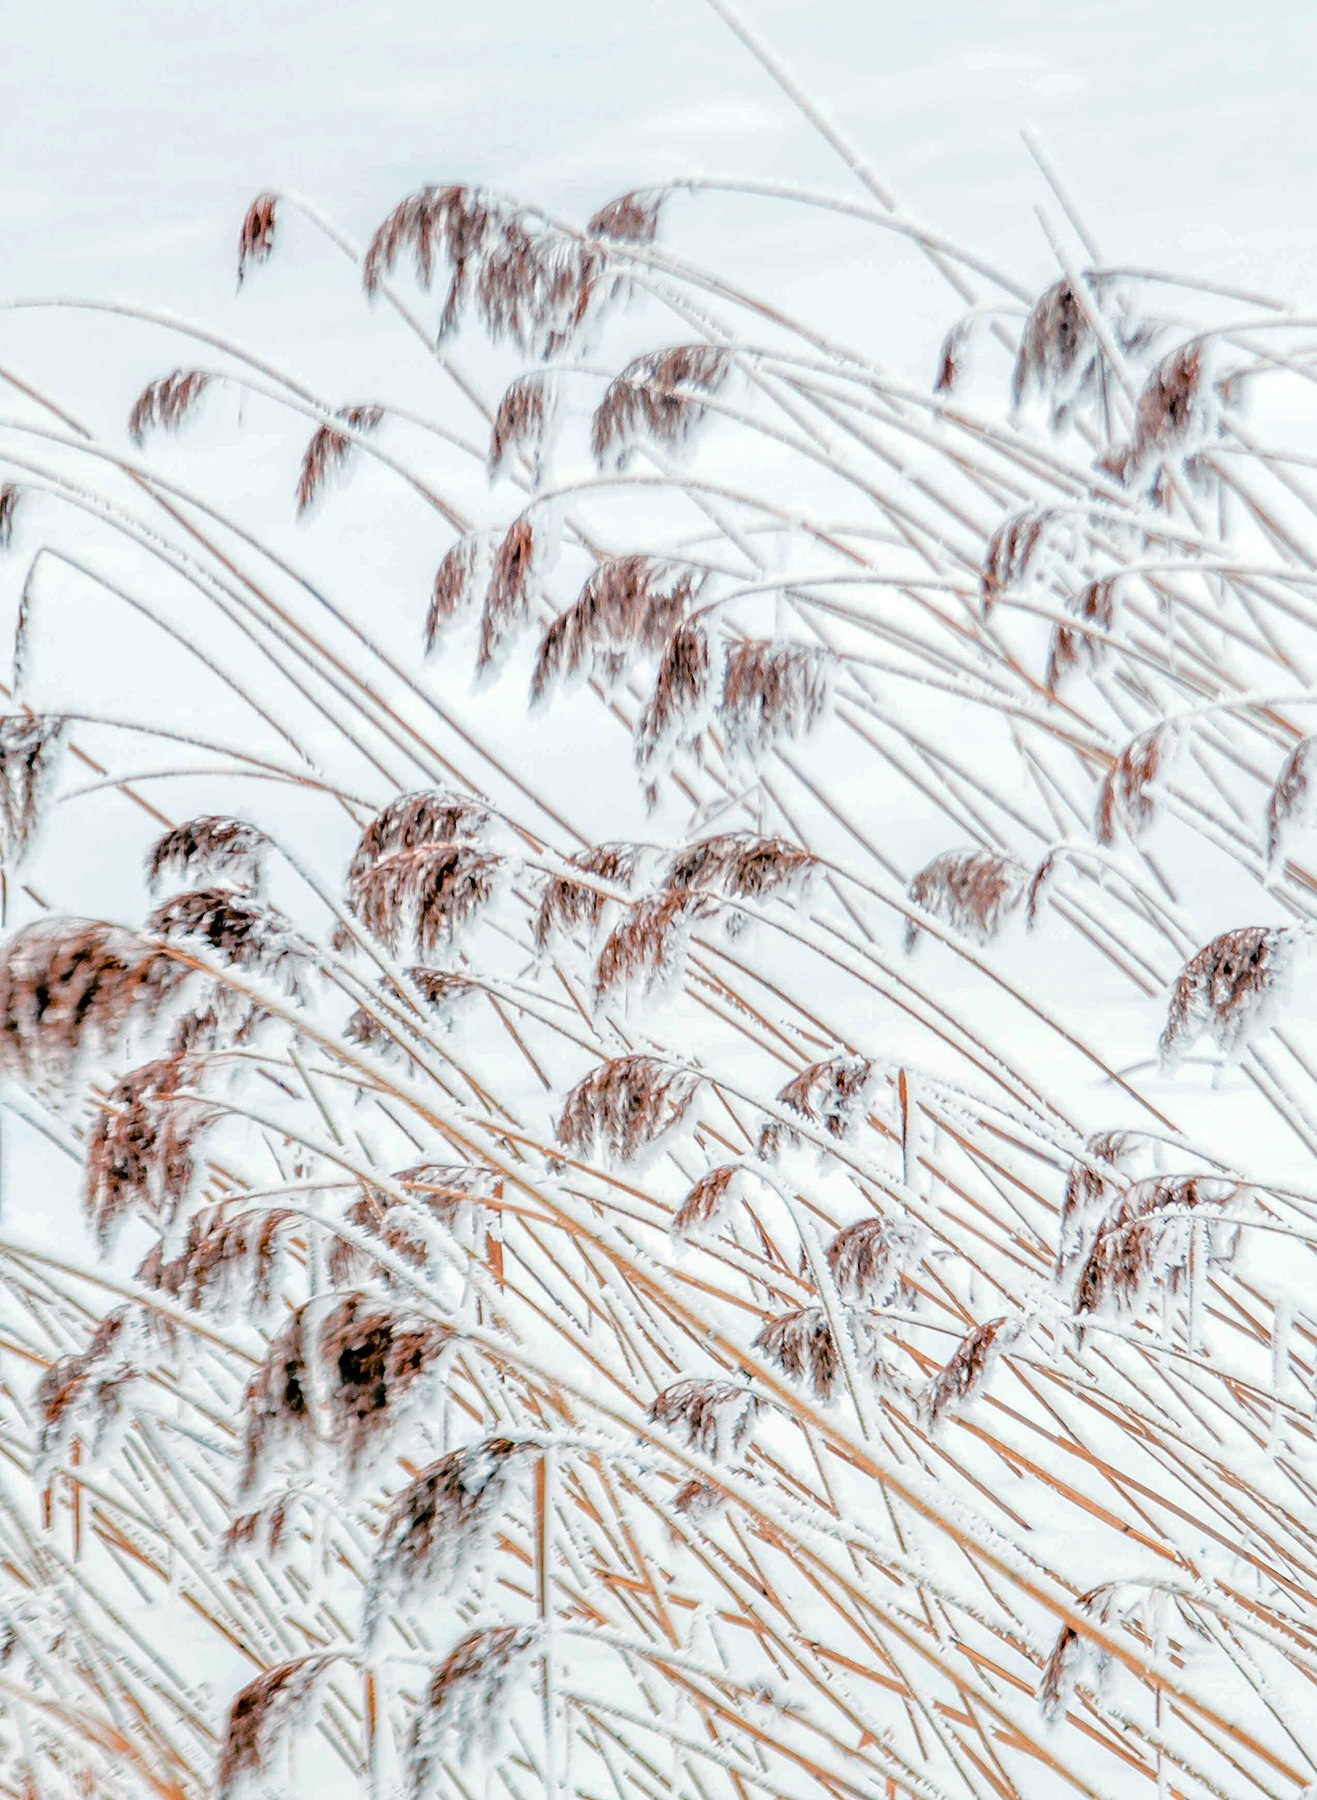 Winter reed by elisah